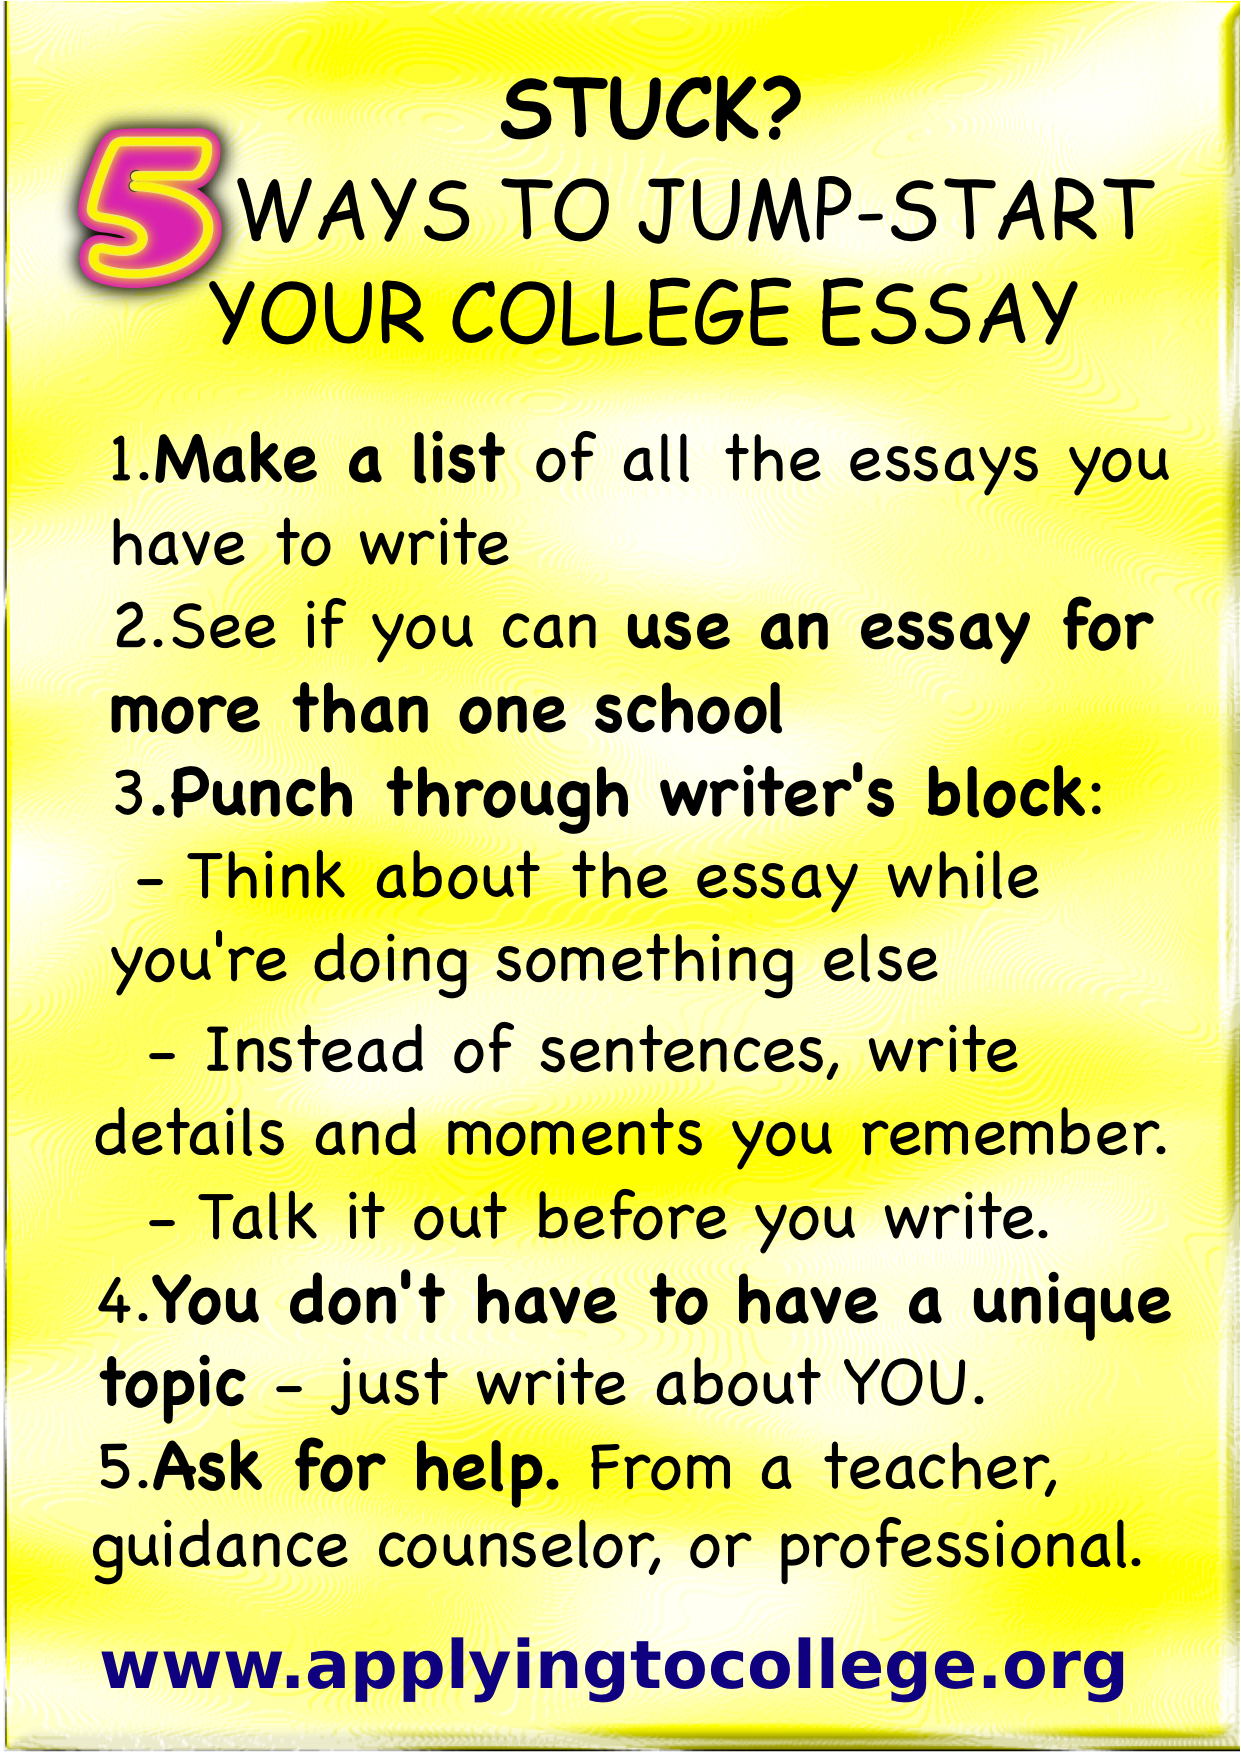 Write the essay for college